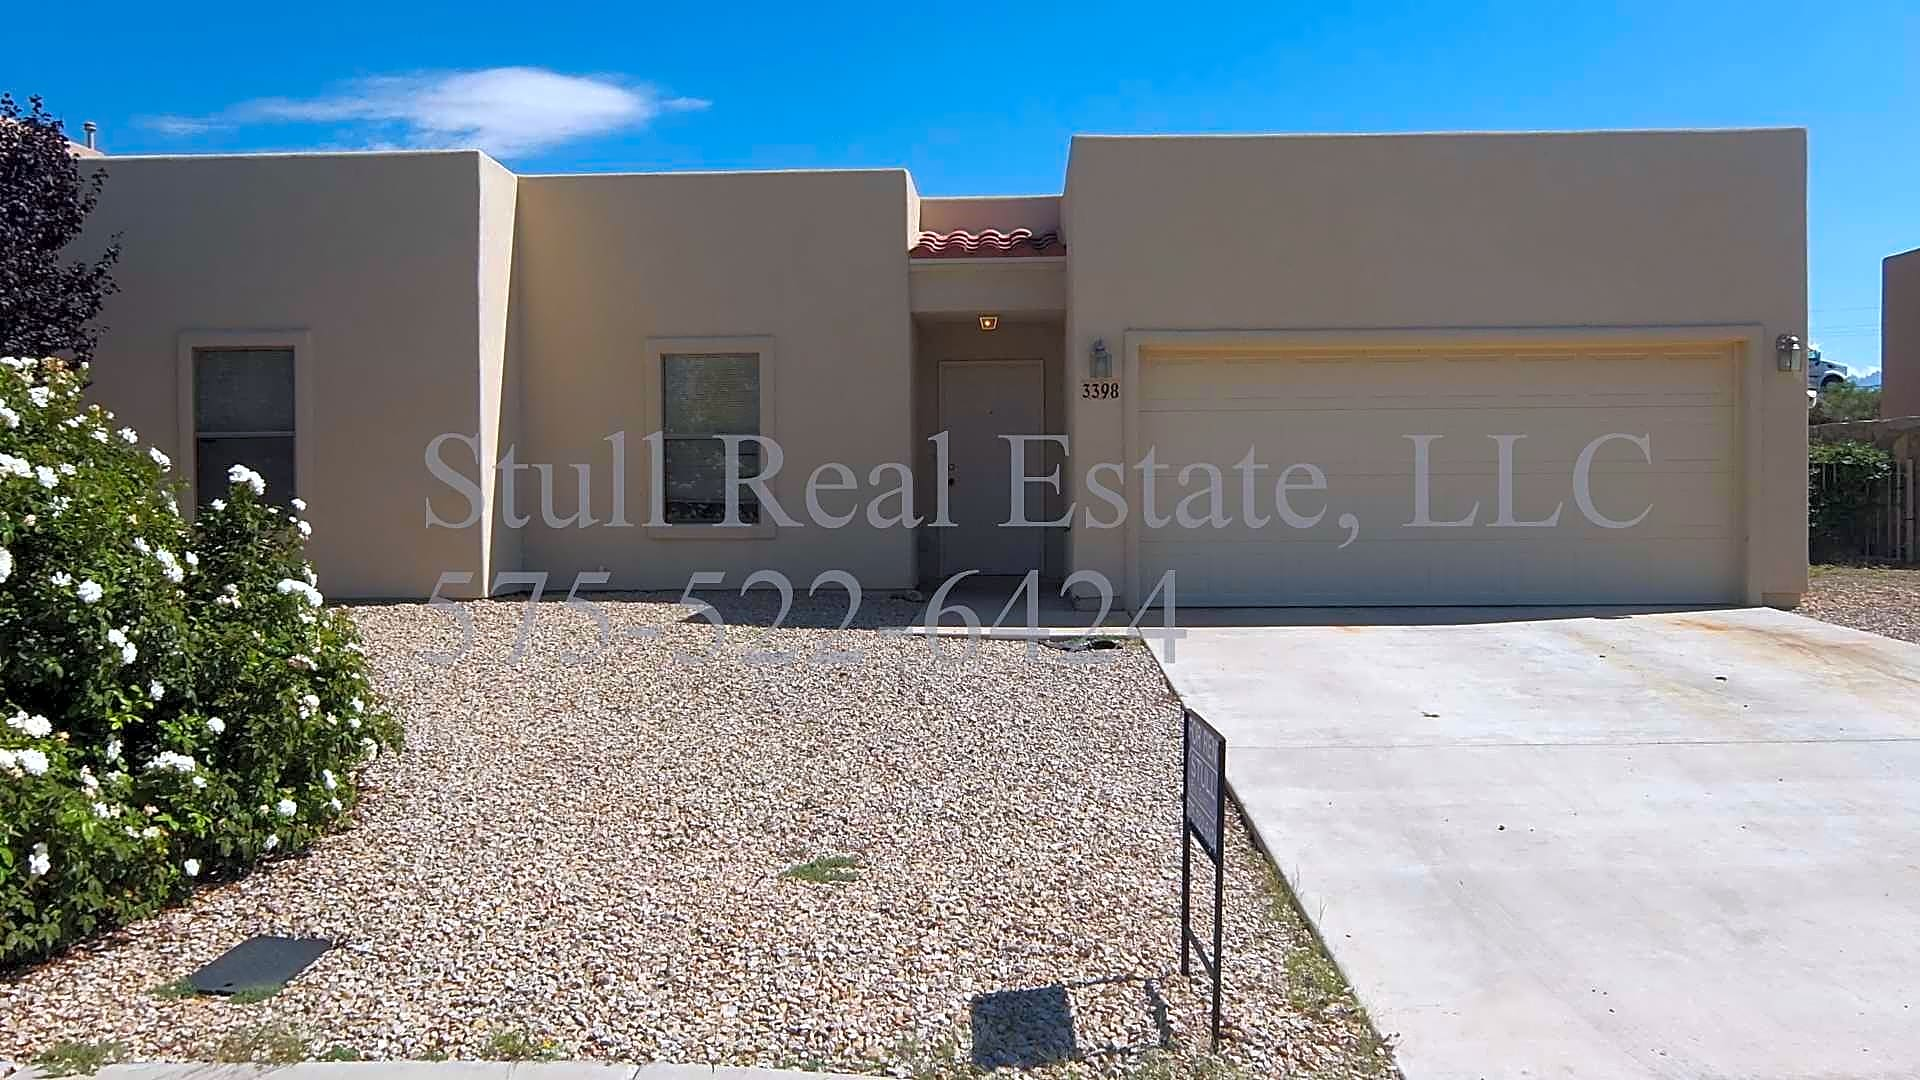 Pet Friendly for Rent in Las Cruces